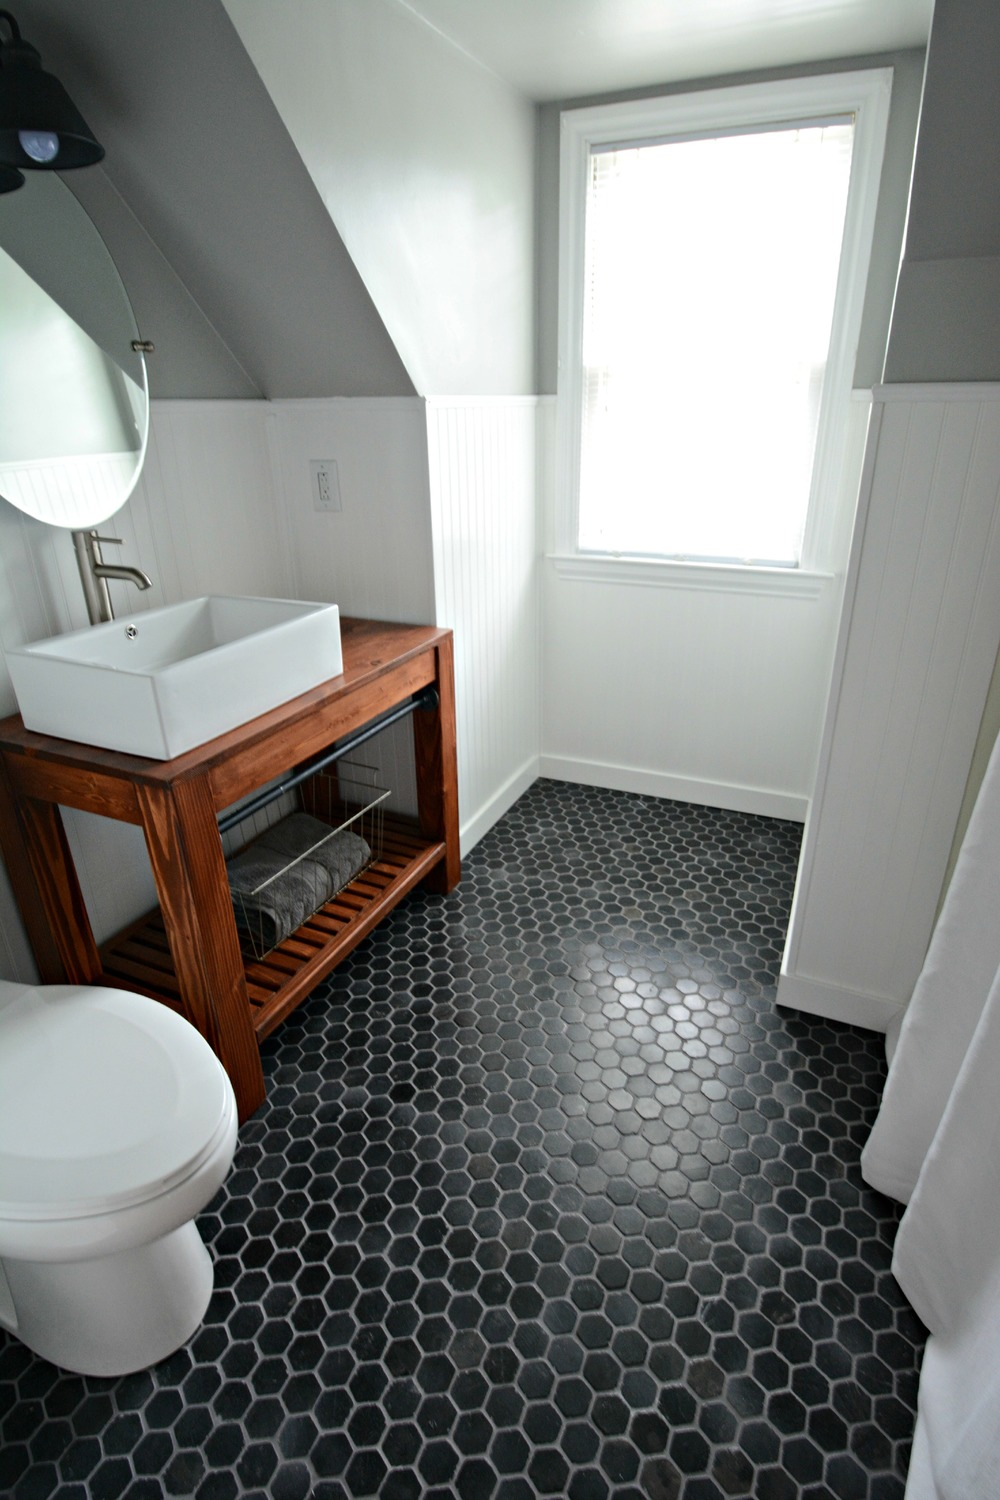 Small Bath Remodel Part Dos — Decor and the Dog on black and white kitchen floor, black and white floor patterns, black and white bathrooms marble tile for floor, black and white bathroom flooring, black and white painted bathroom,